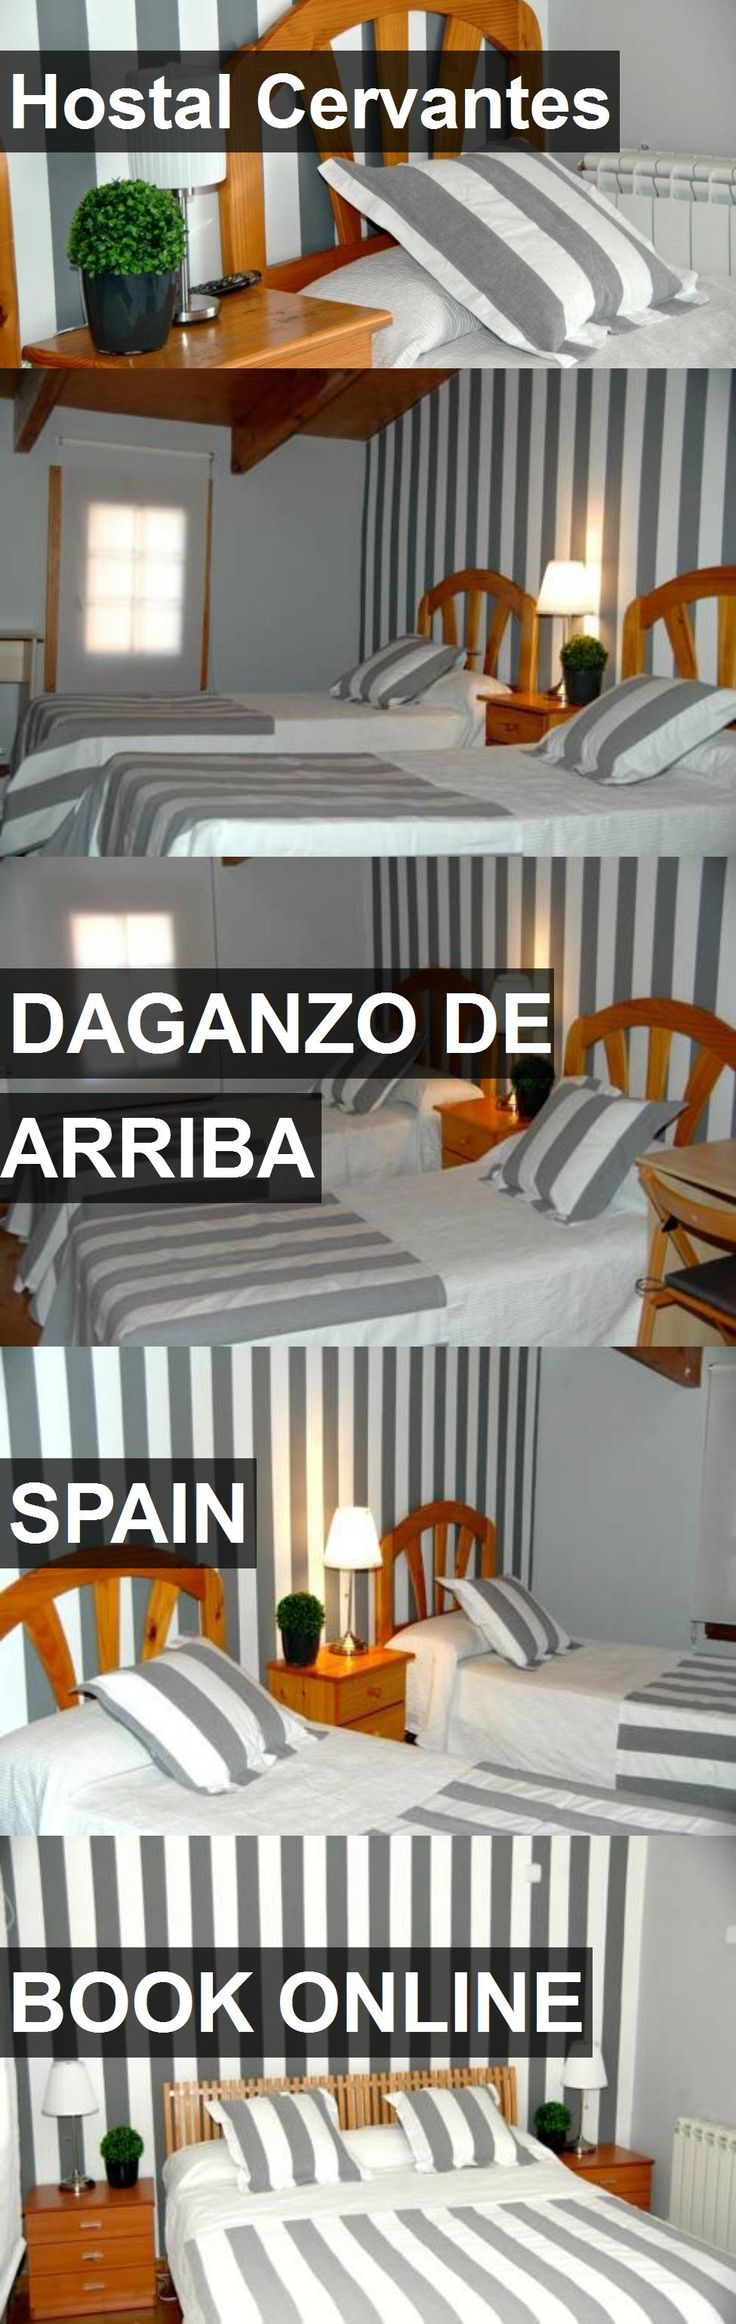 Hotel Hostal Cervantes in Daganzo de Arriba, Spain. For more information, photos, reviews and best prices please follow the link. #Spain #DaganzodeArriba #travel #vacation #hotel